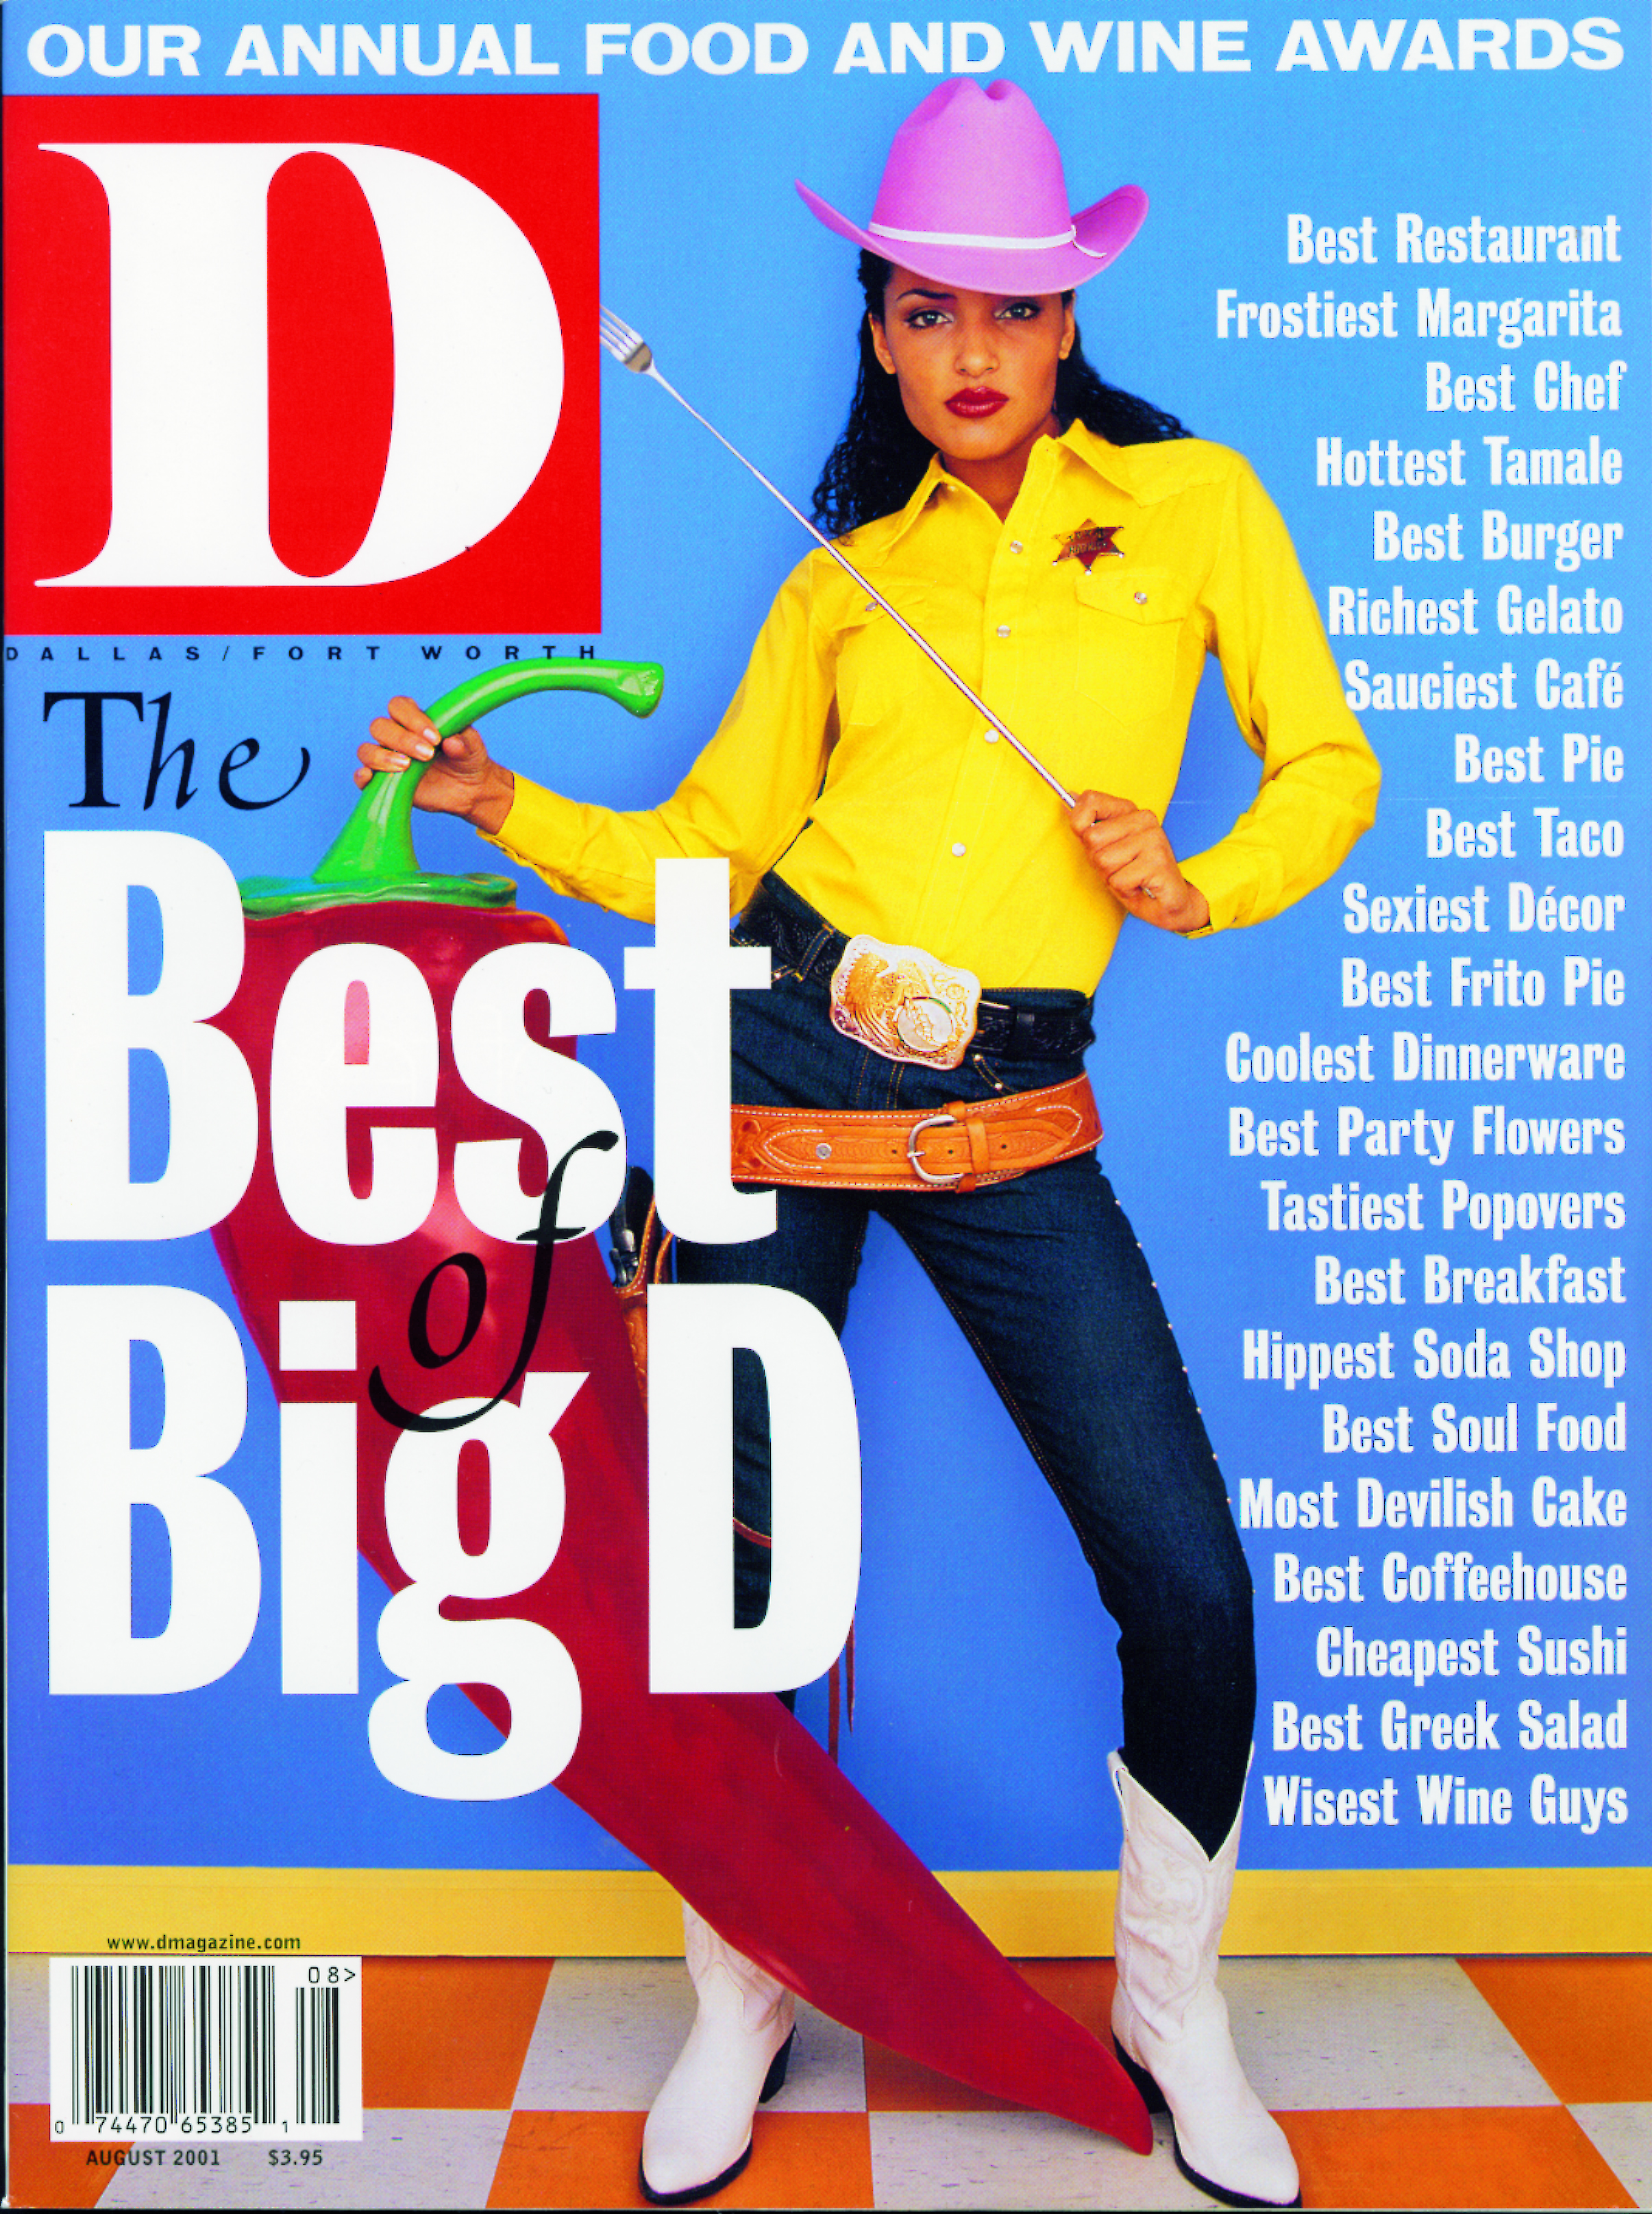 August 2001 cover